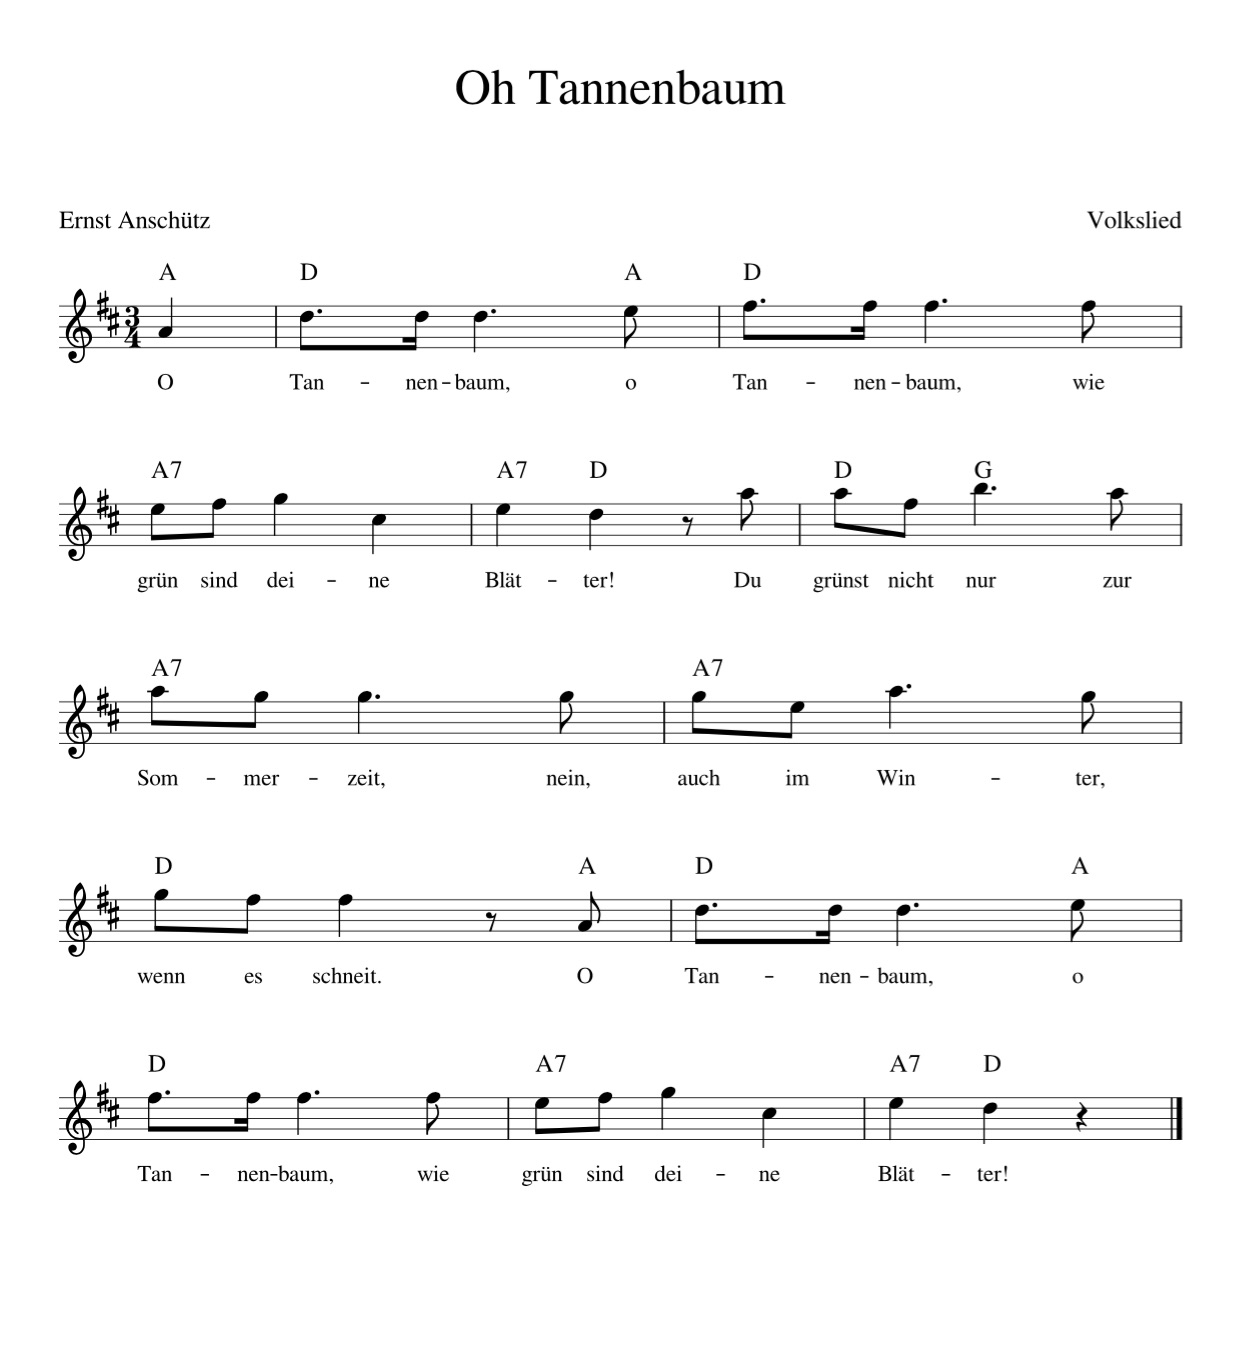 Lied Oh Tannenbaum Text.O Tannenbaum Kinderlieder Noten Text Kinderlieder Zum